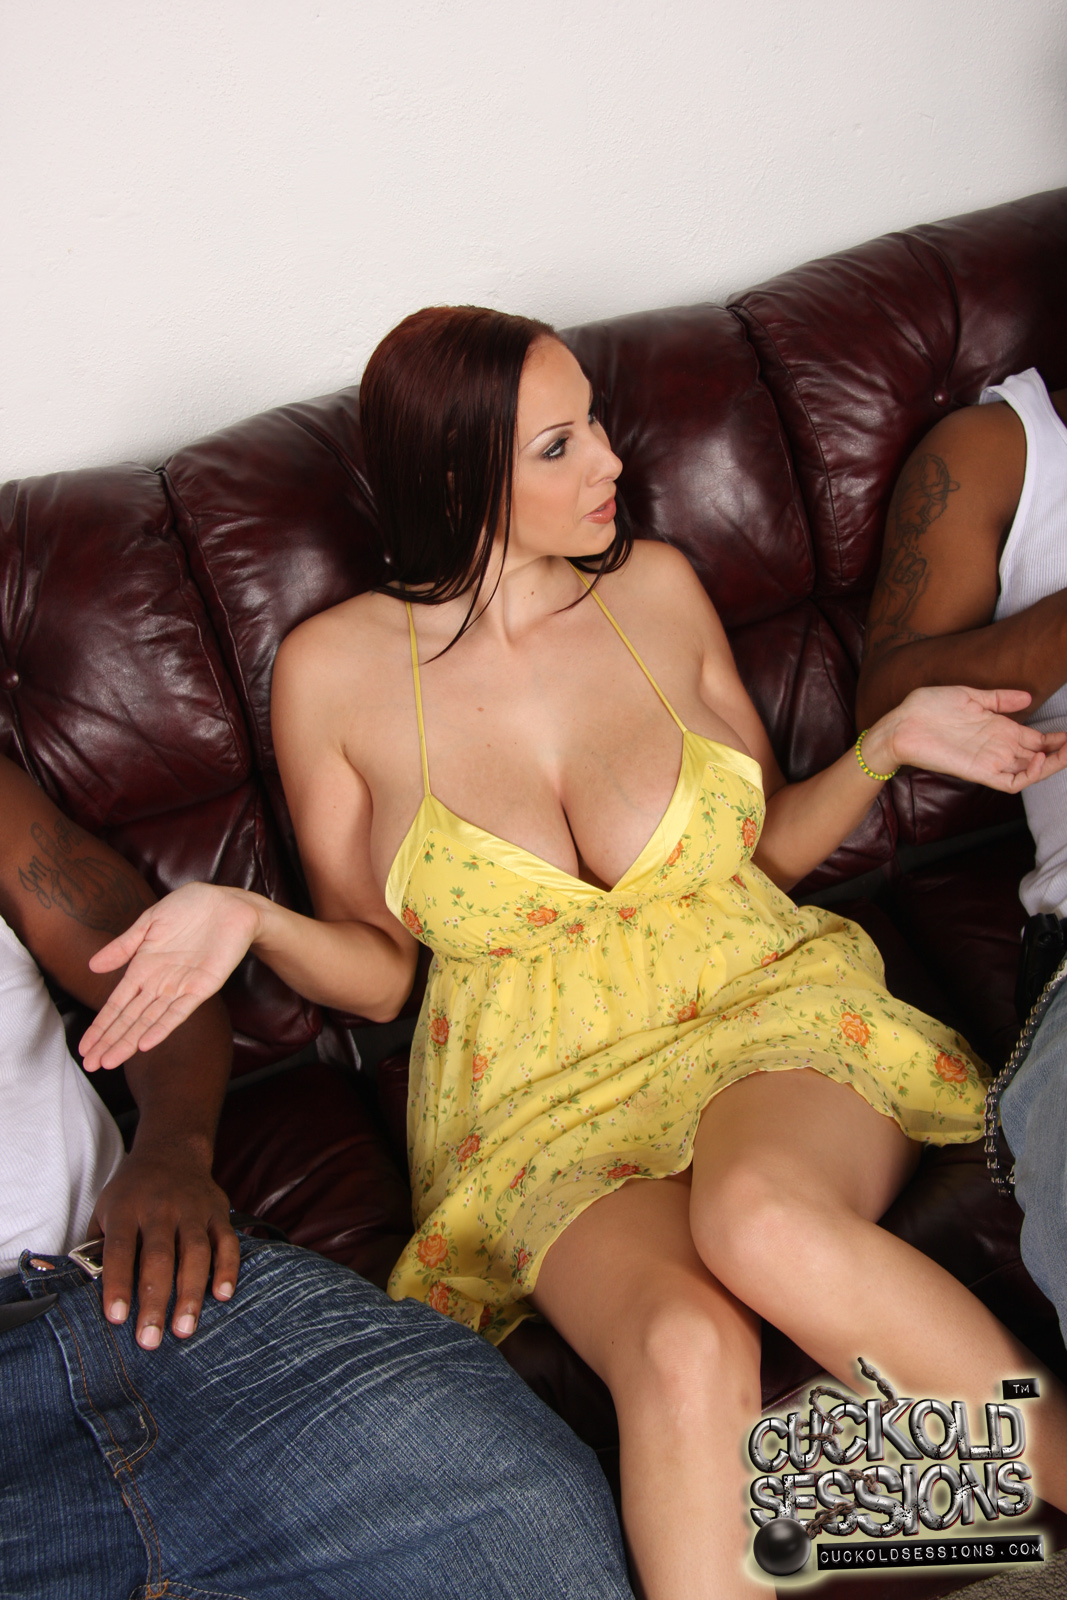 Gianna michaels tking black cock